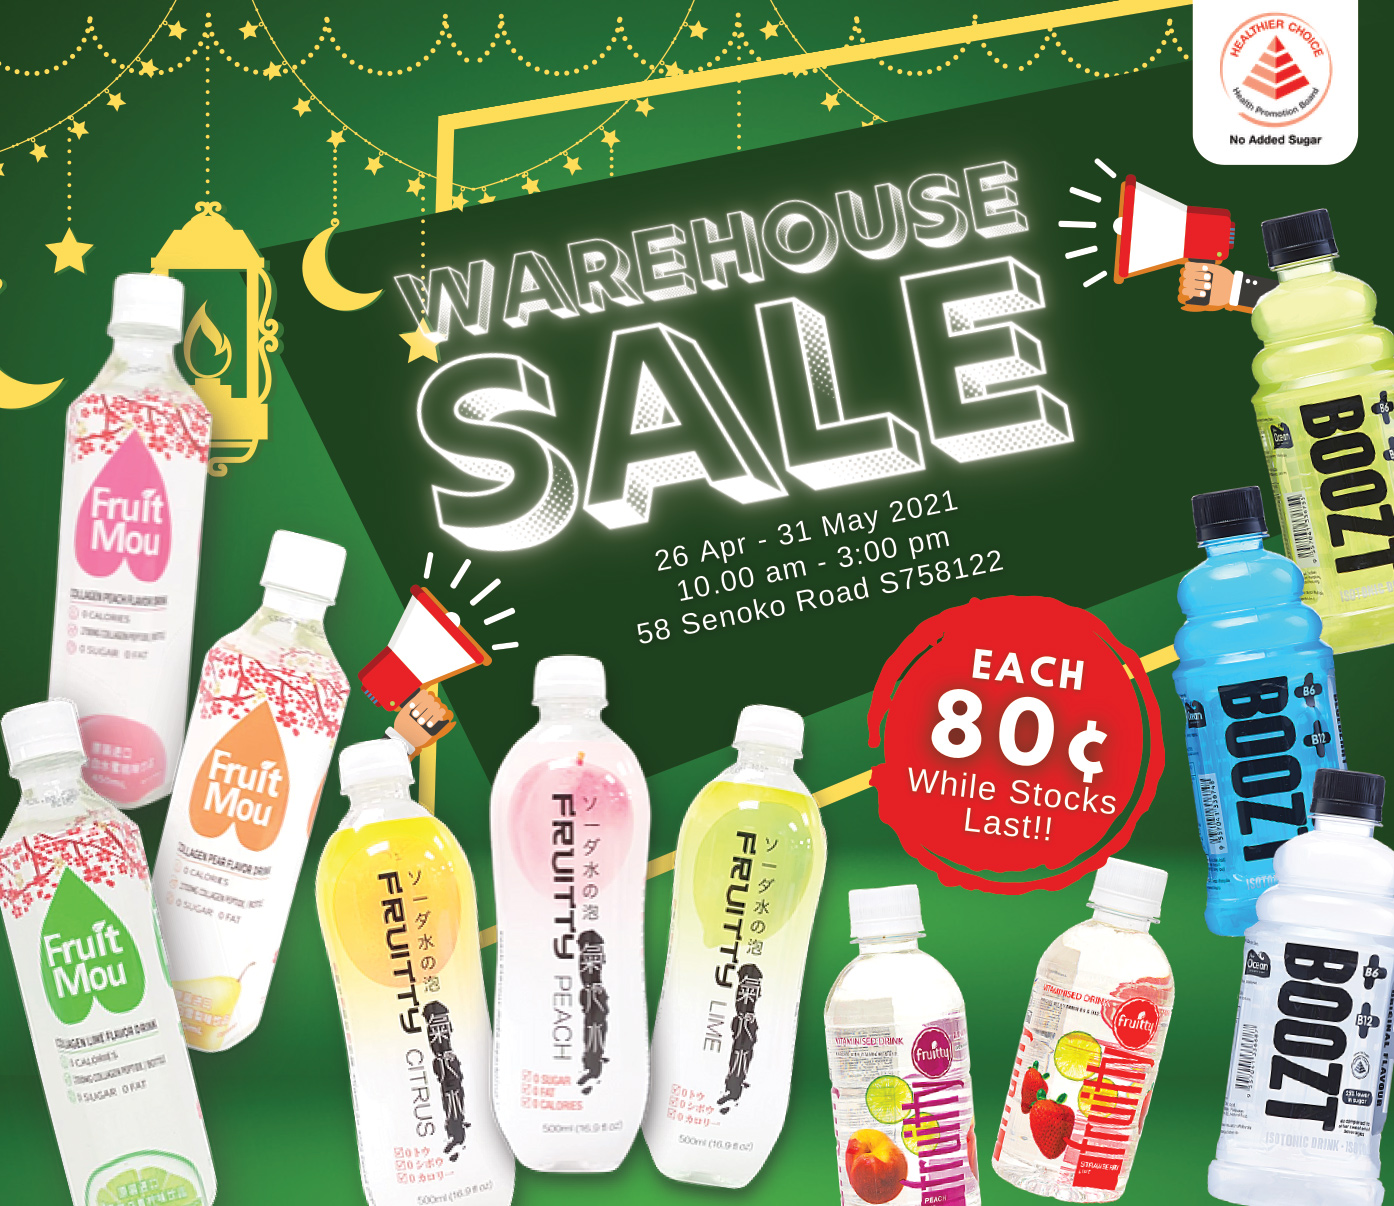 Pere Ocean Hari Raya 2021 Warehouse Sale in Singapore. Soft Drinks 80 cents each. Fruitty Soda Sparkling Water, Fruit MOU Collagen Drink, Fruitty Vitaminized Drink & Boozt Isotonic Sports Drink.